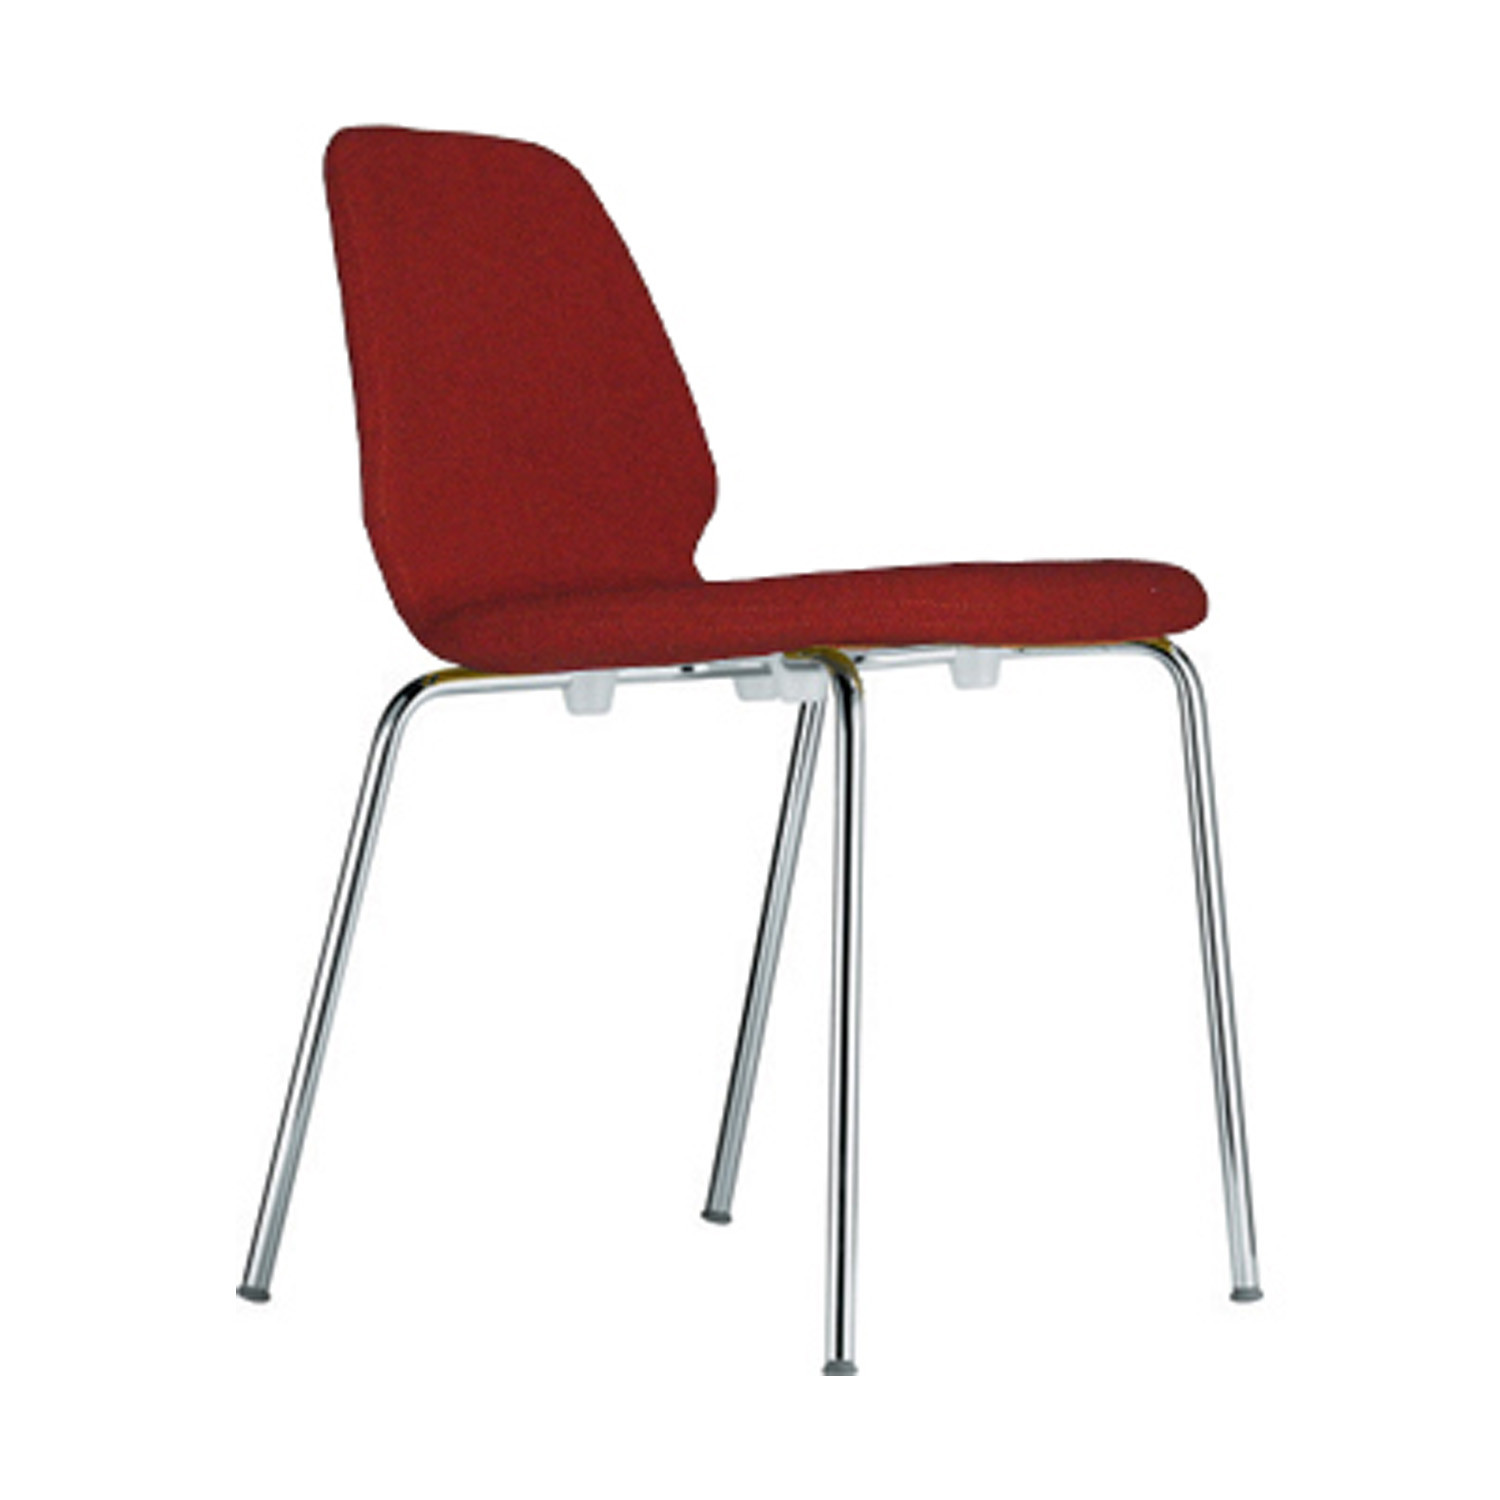 Tindari Chair 4-Leg Base